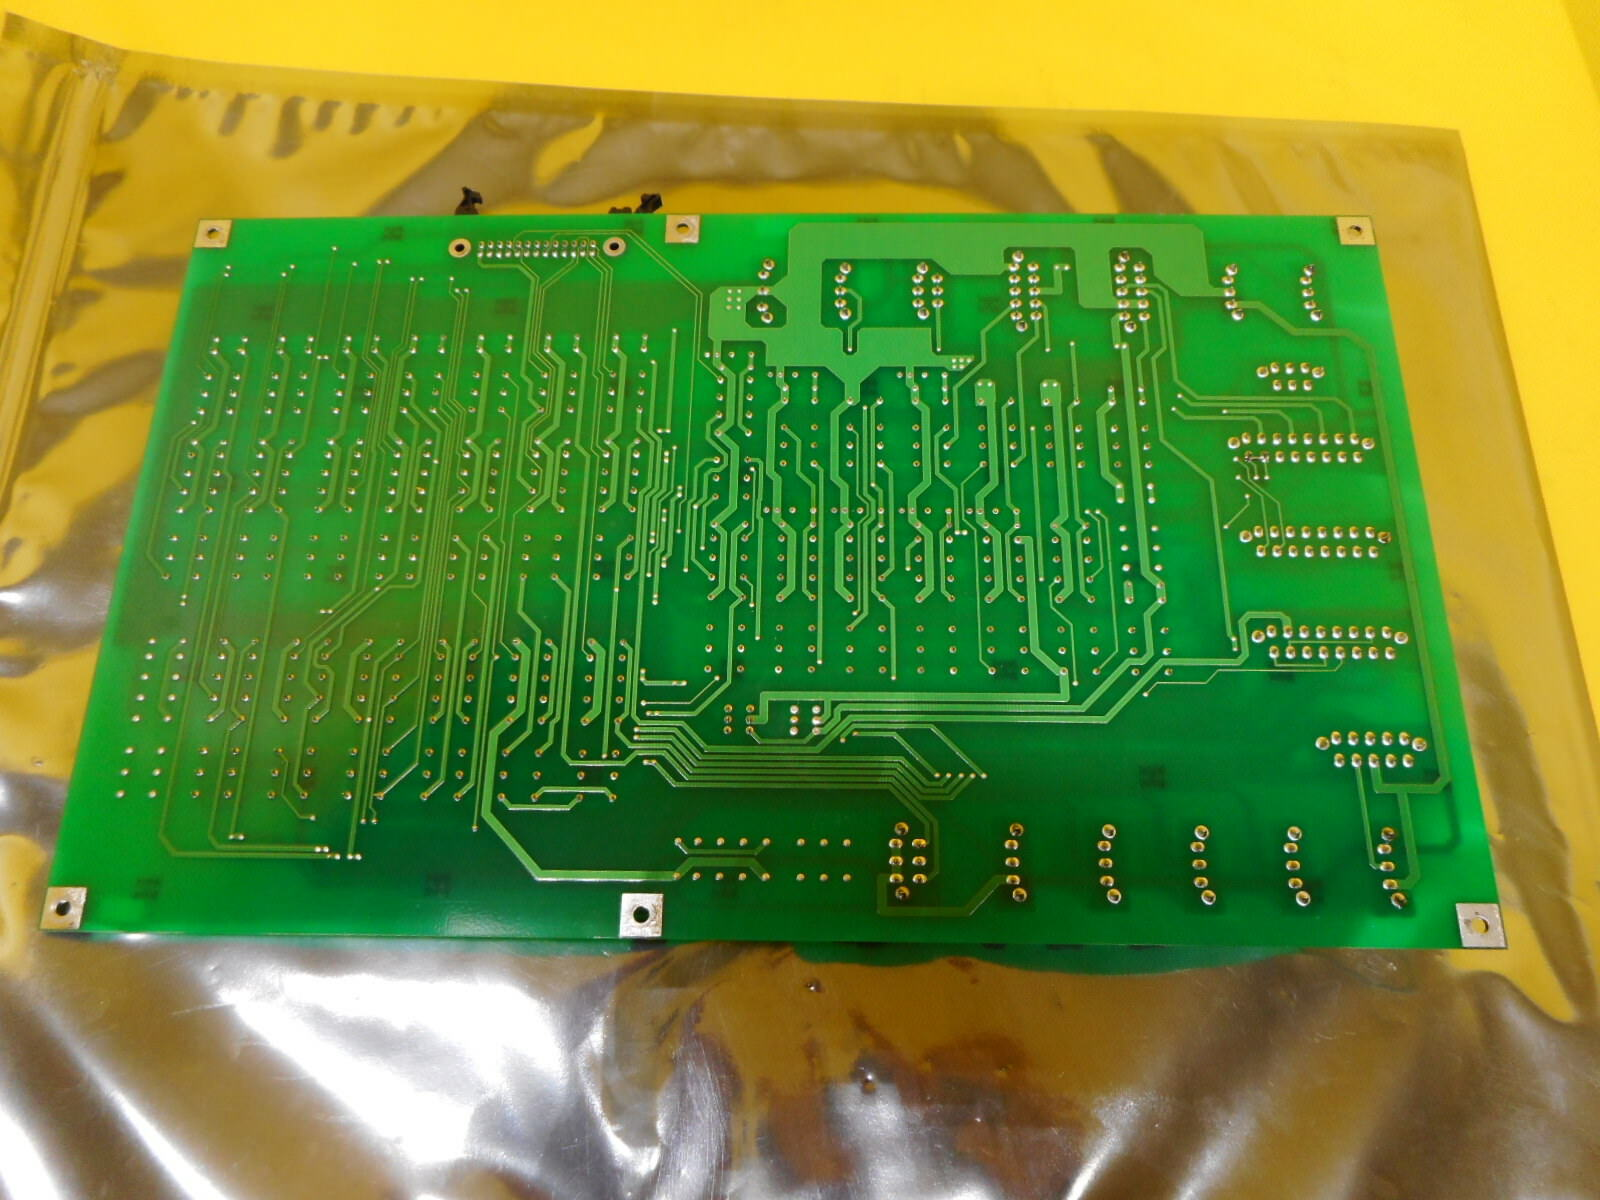 Nikon 36020133 EX-Interlock ASK Interface Board PCB NSR System Used Working